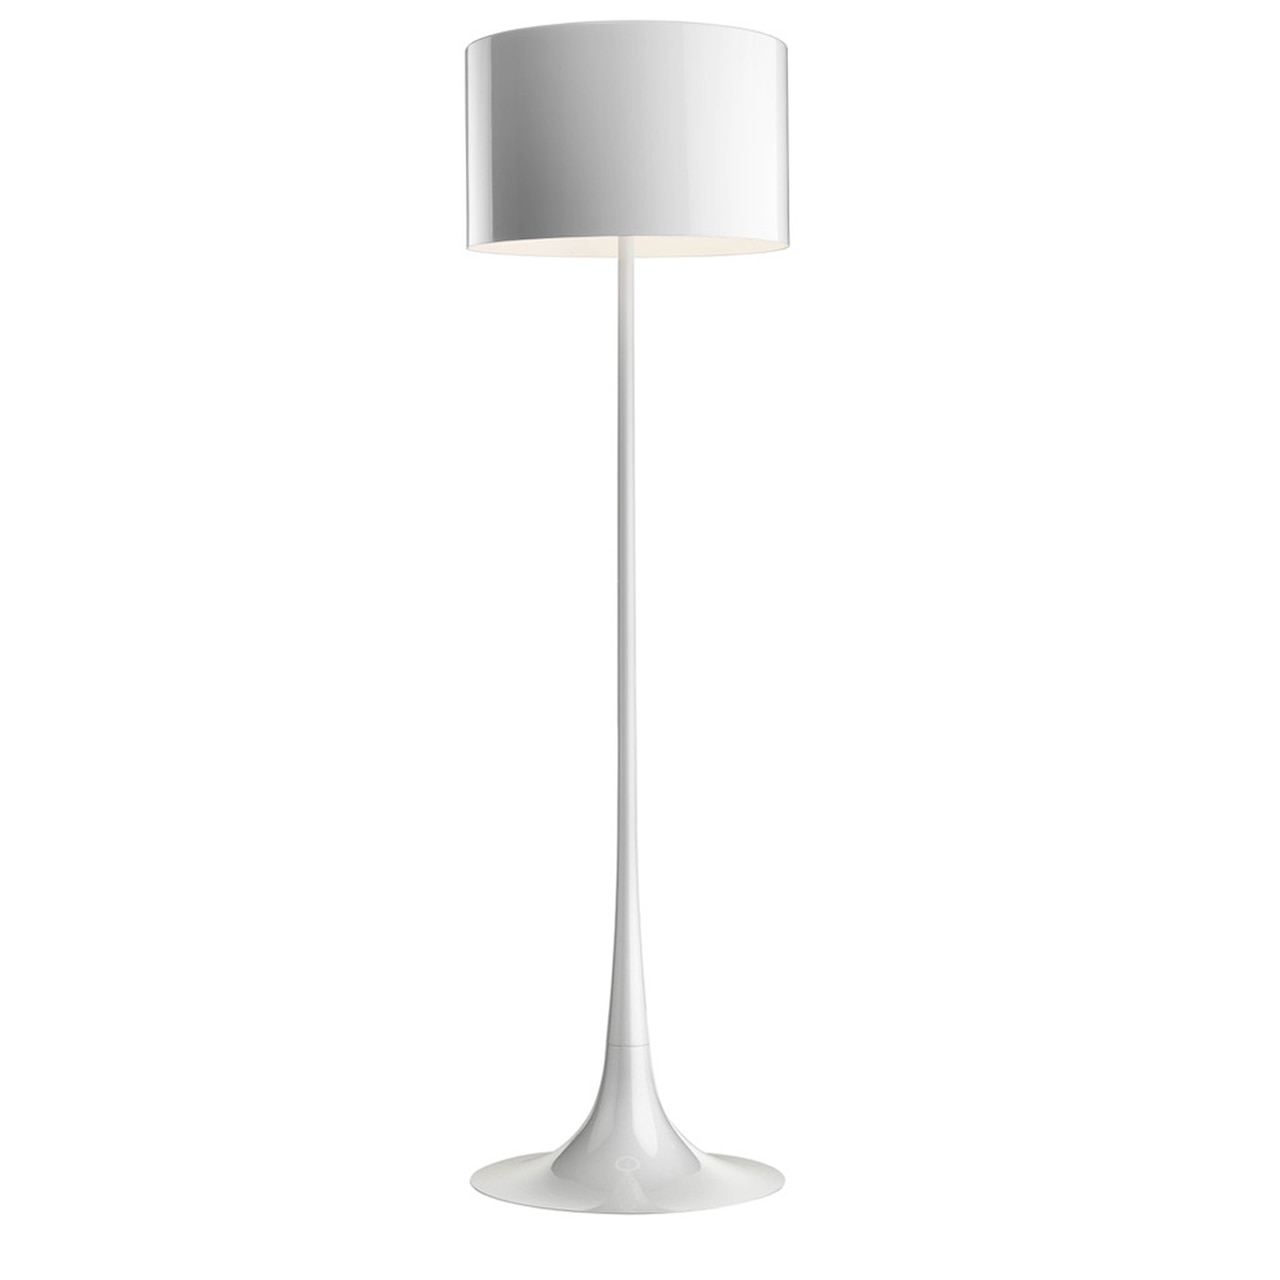 Spun Light F Floor Lamp Dimmable In Shiny White Mud And Black intended for measurements 1280 X 1280